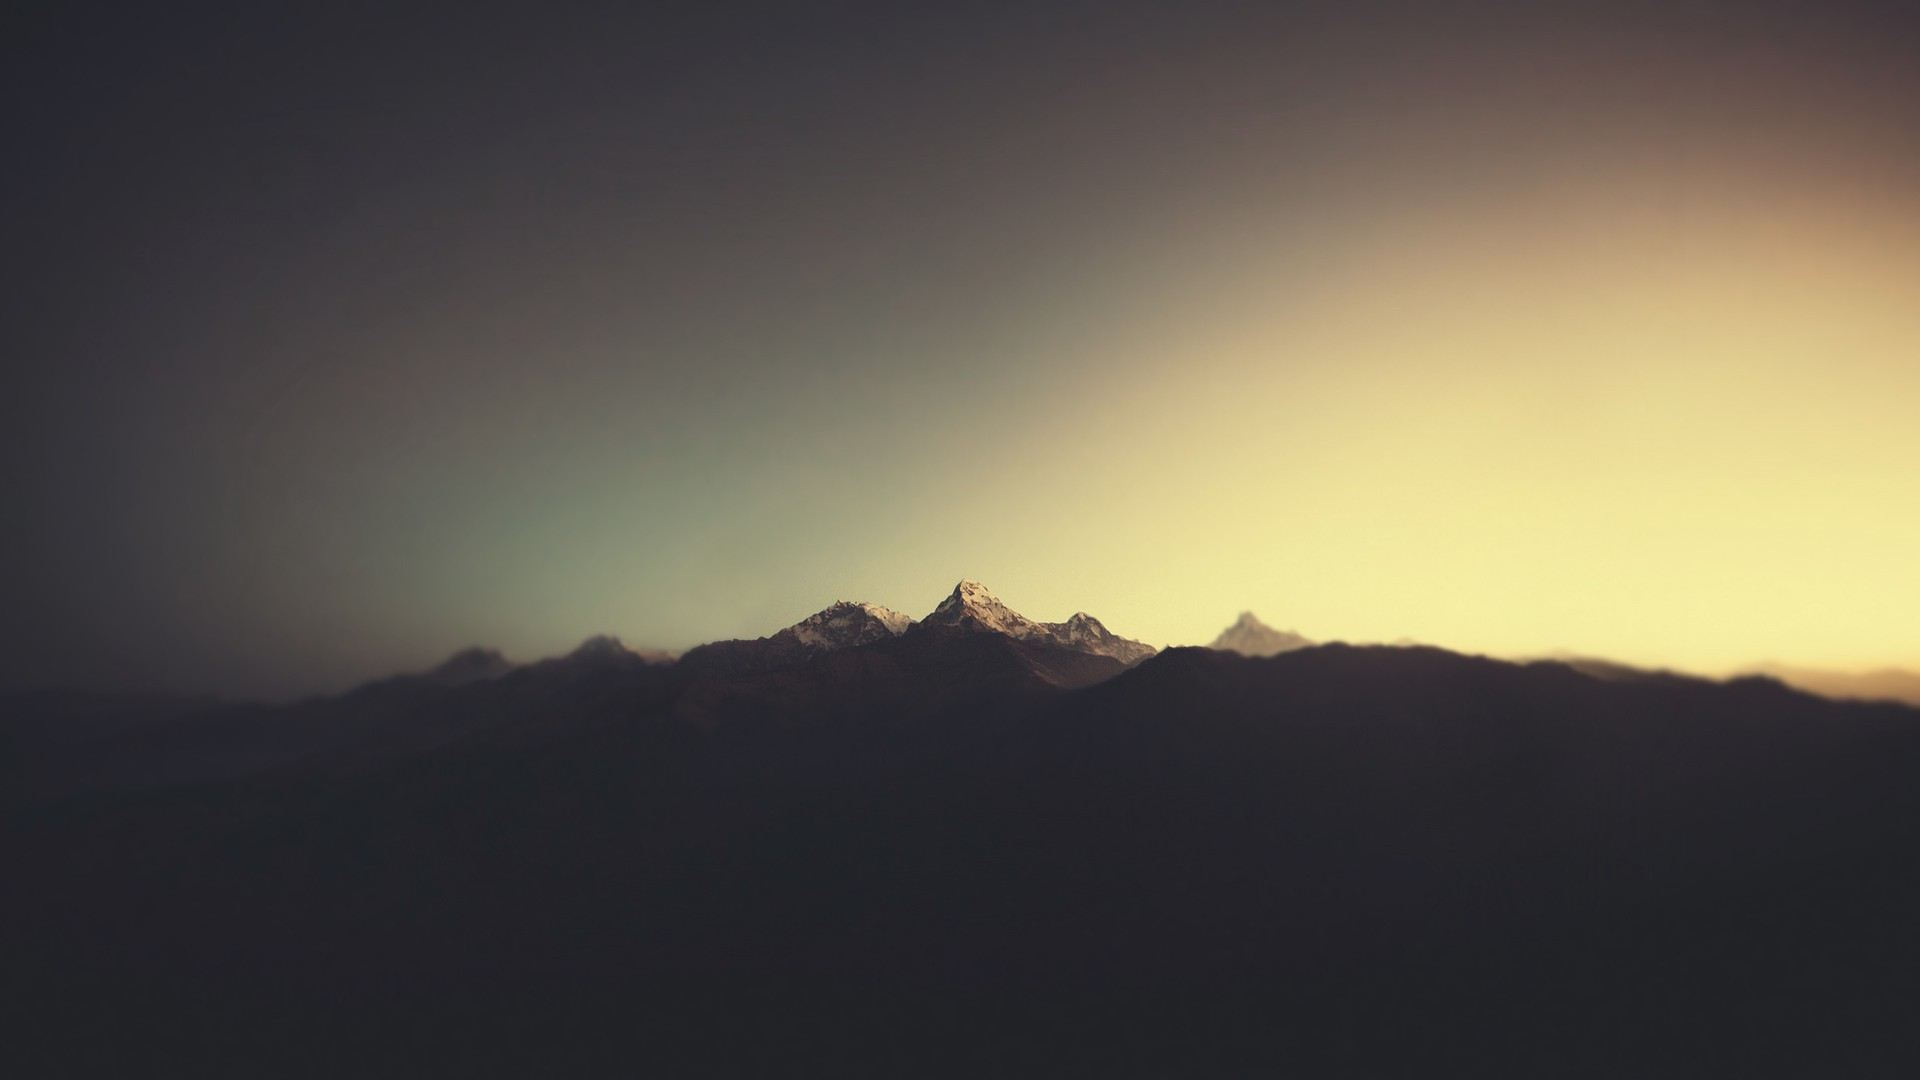 General 1920x1080 nature minimalism mountains sunlight landscape silhouette annapurna Himalayas beige